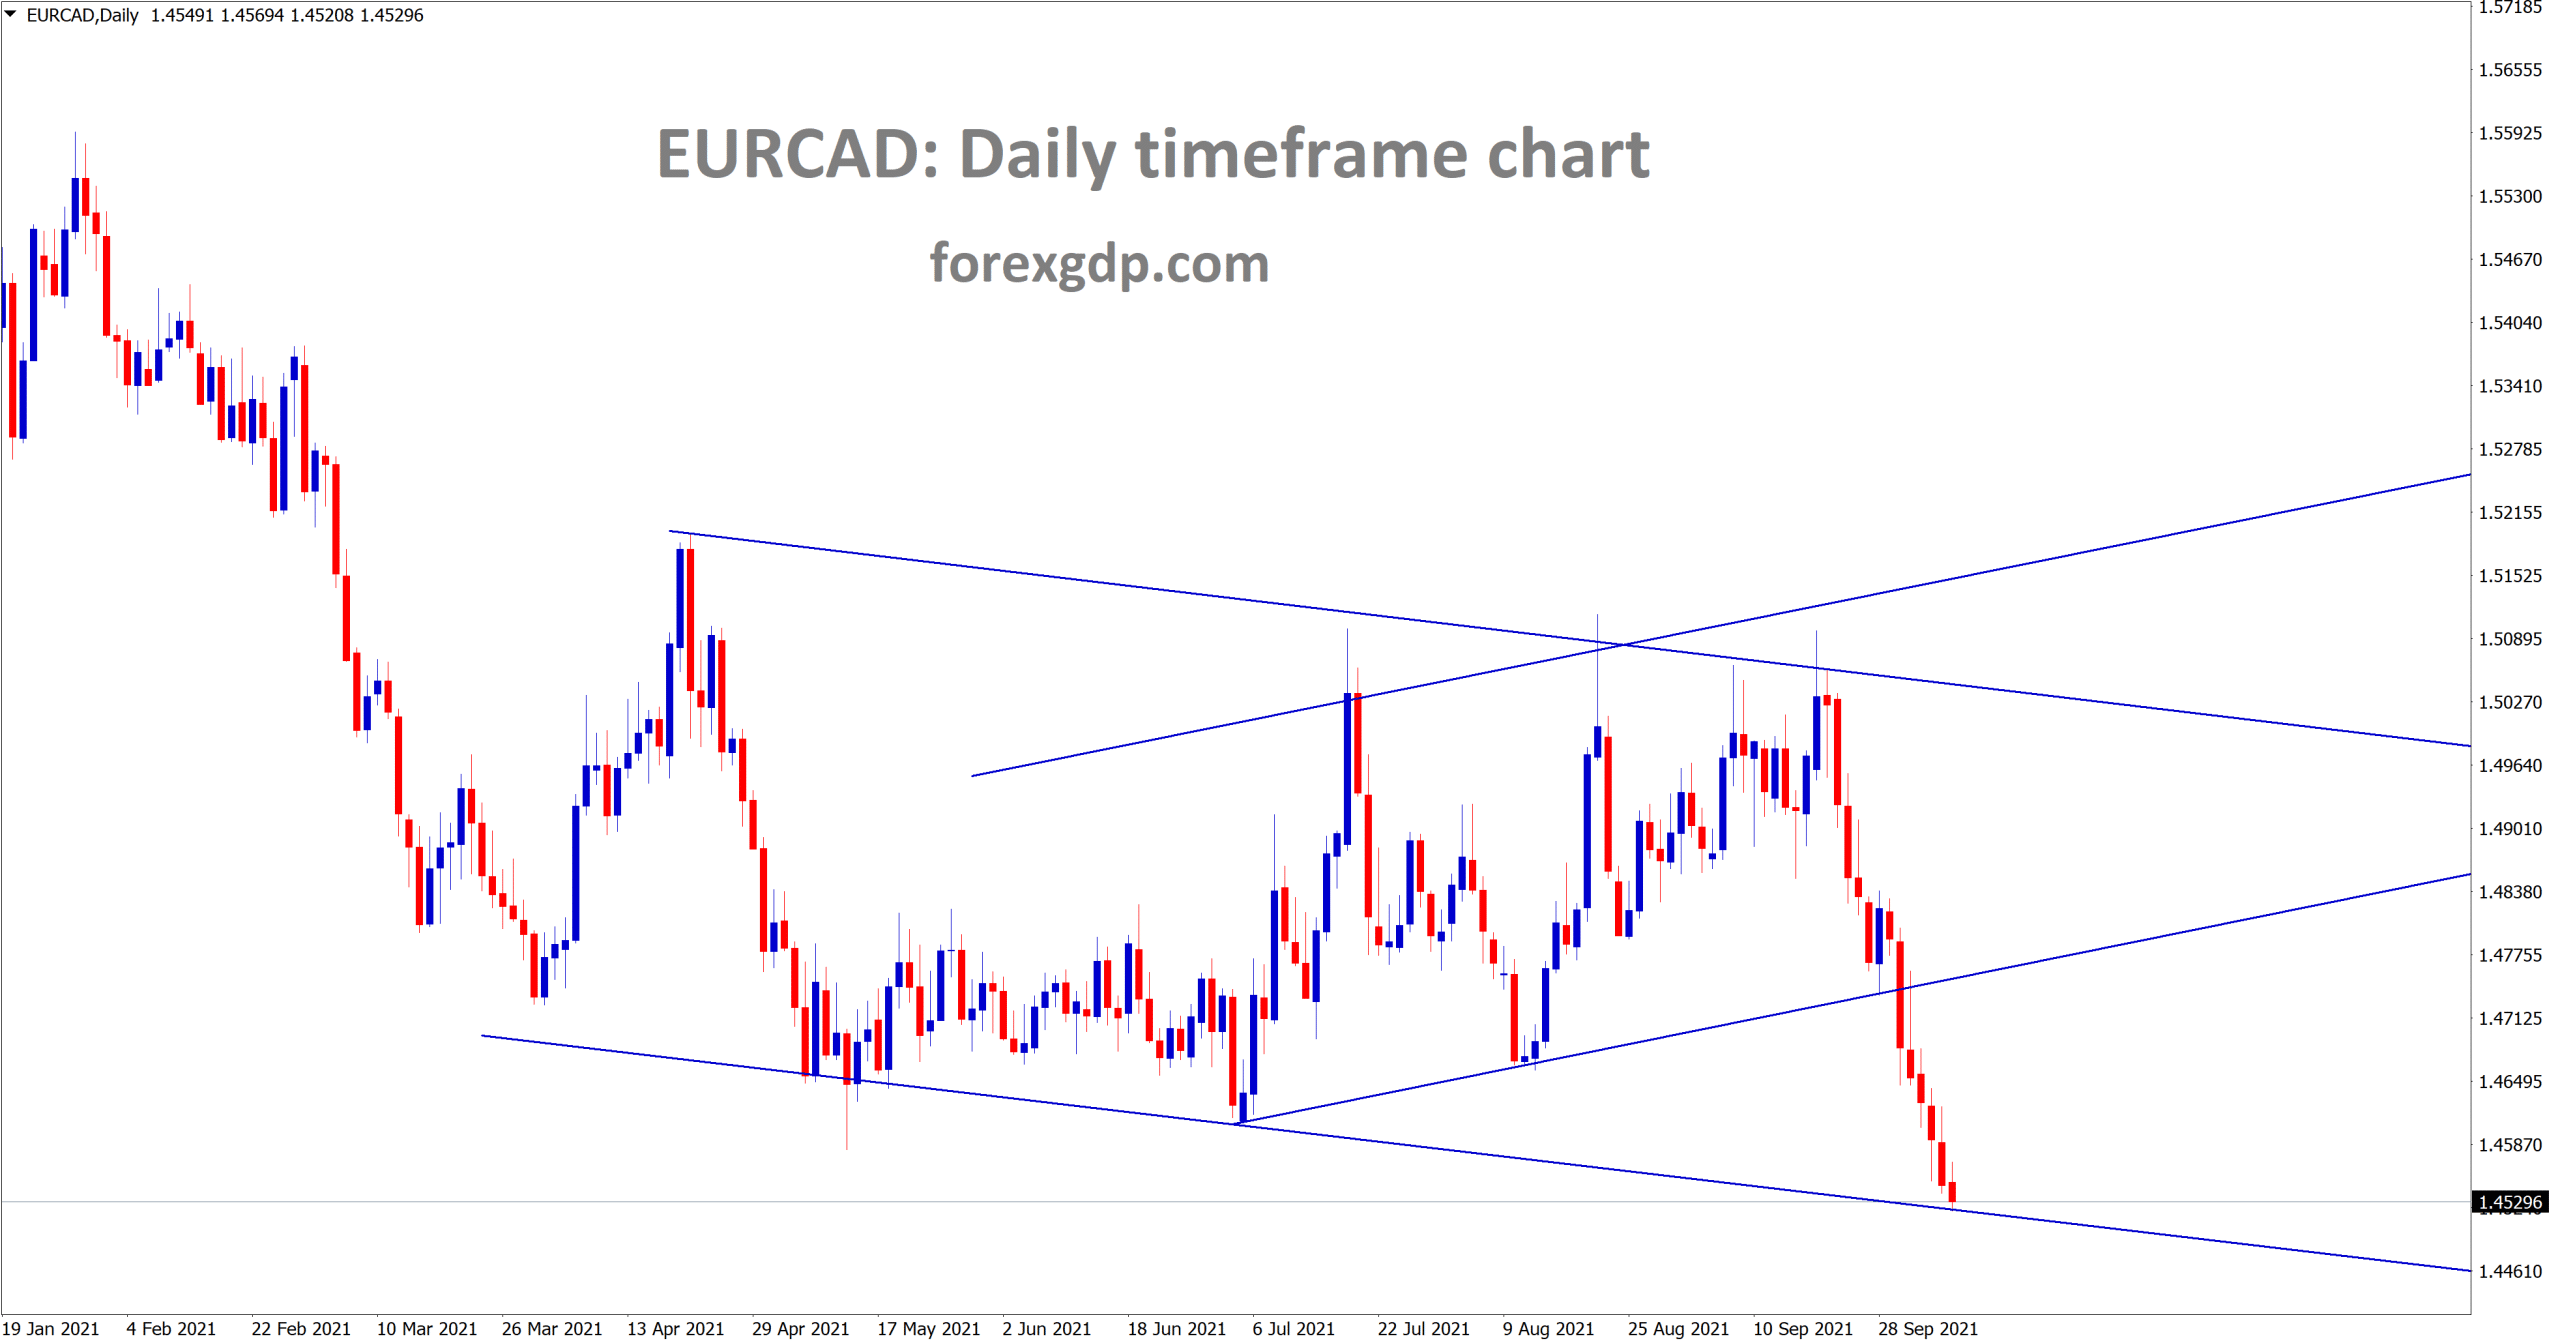 EURCAD has broken the horizontal support and it is near to the lower low level of descending channel